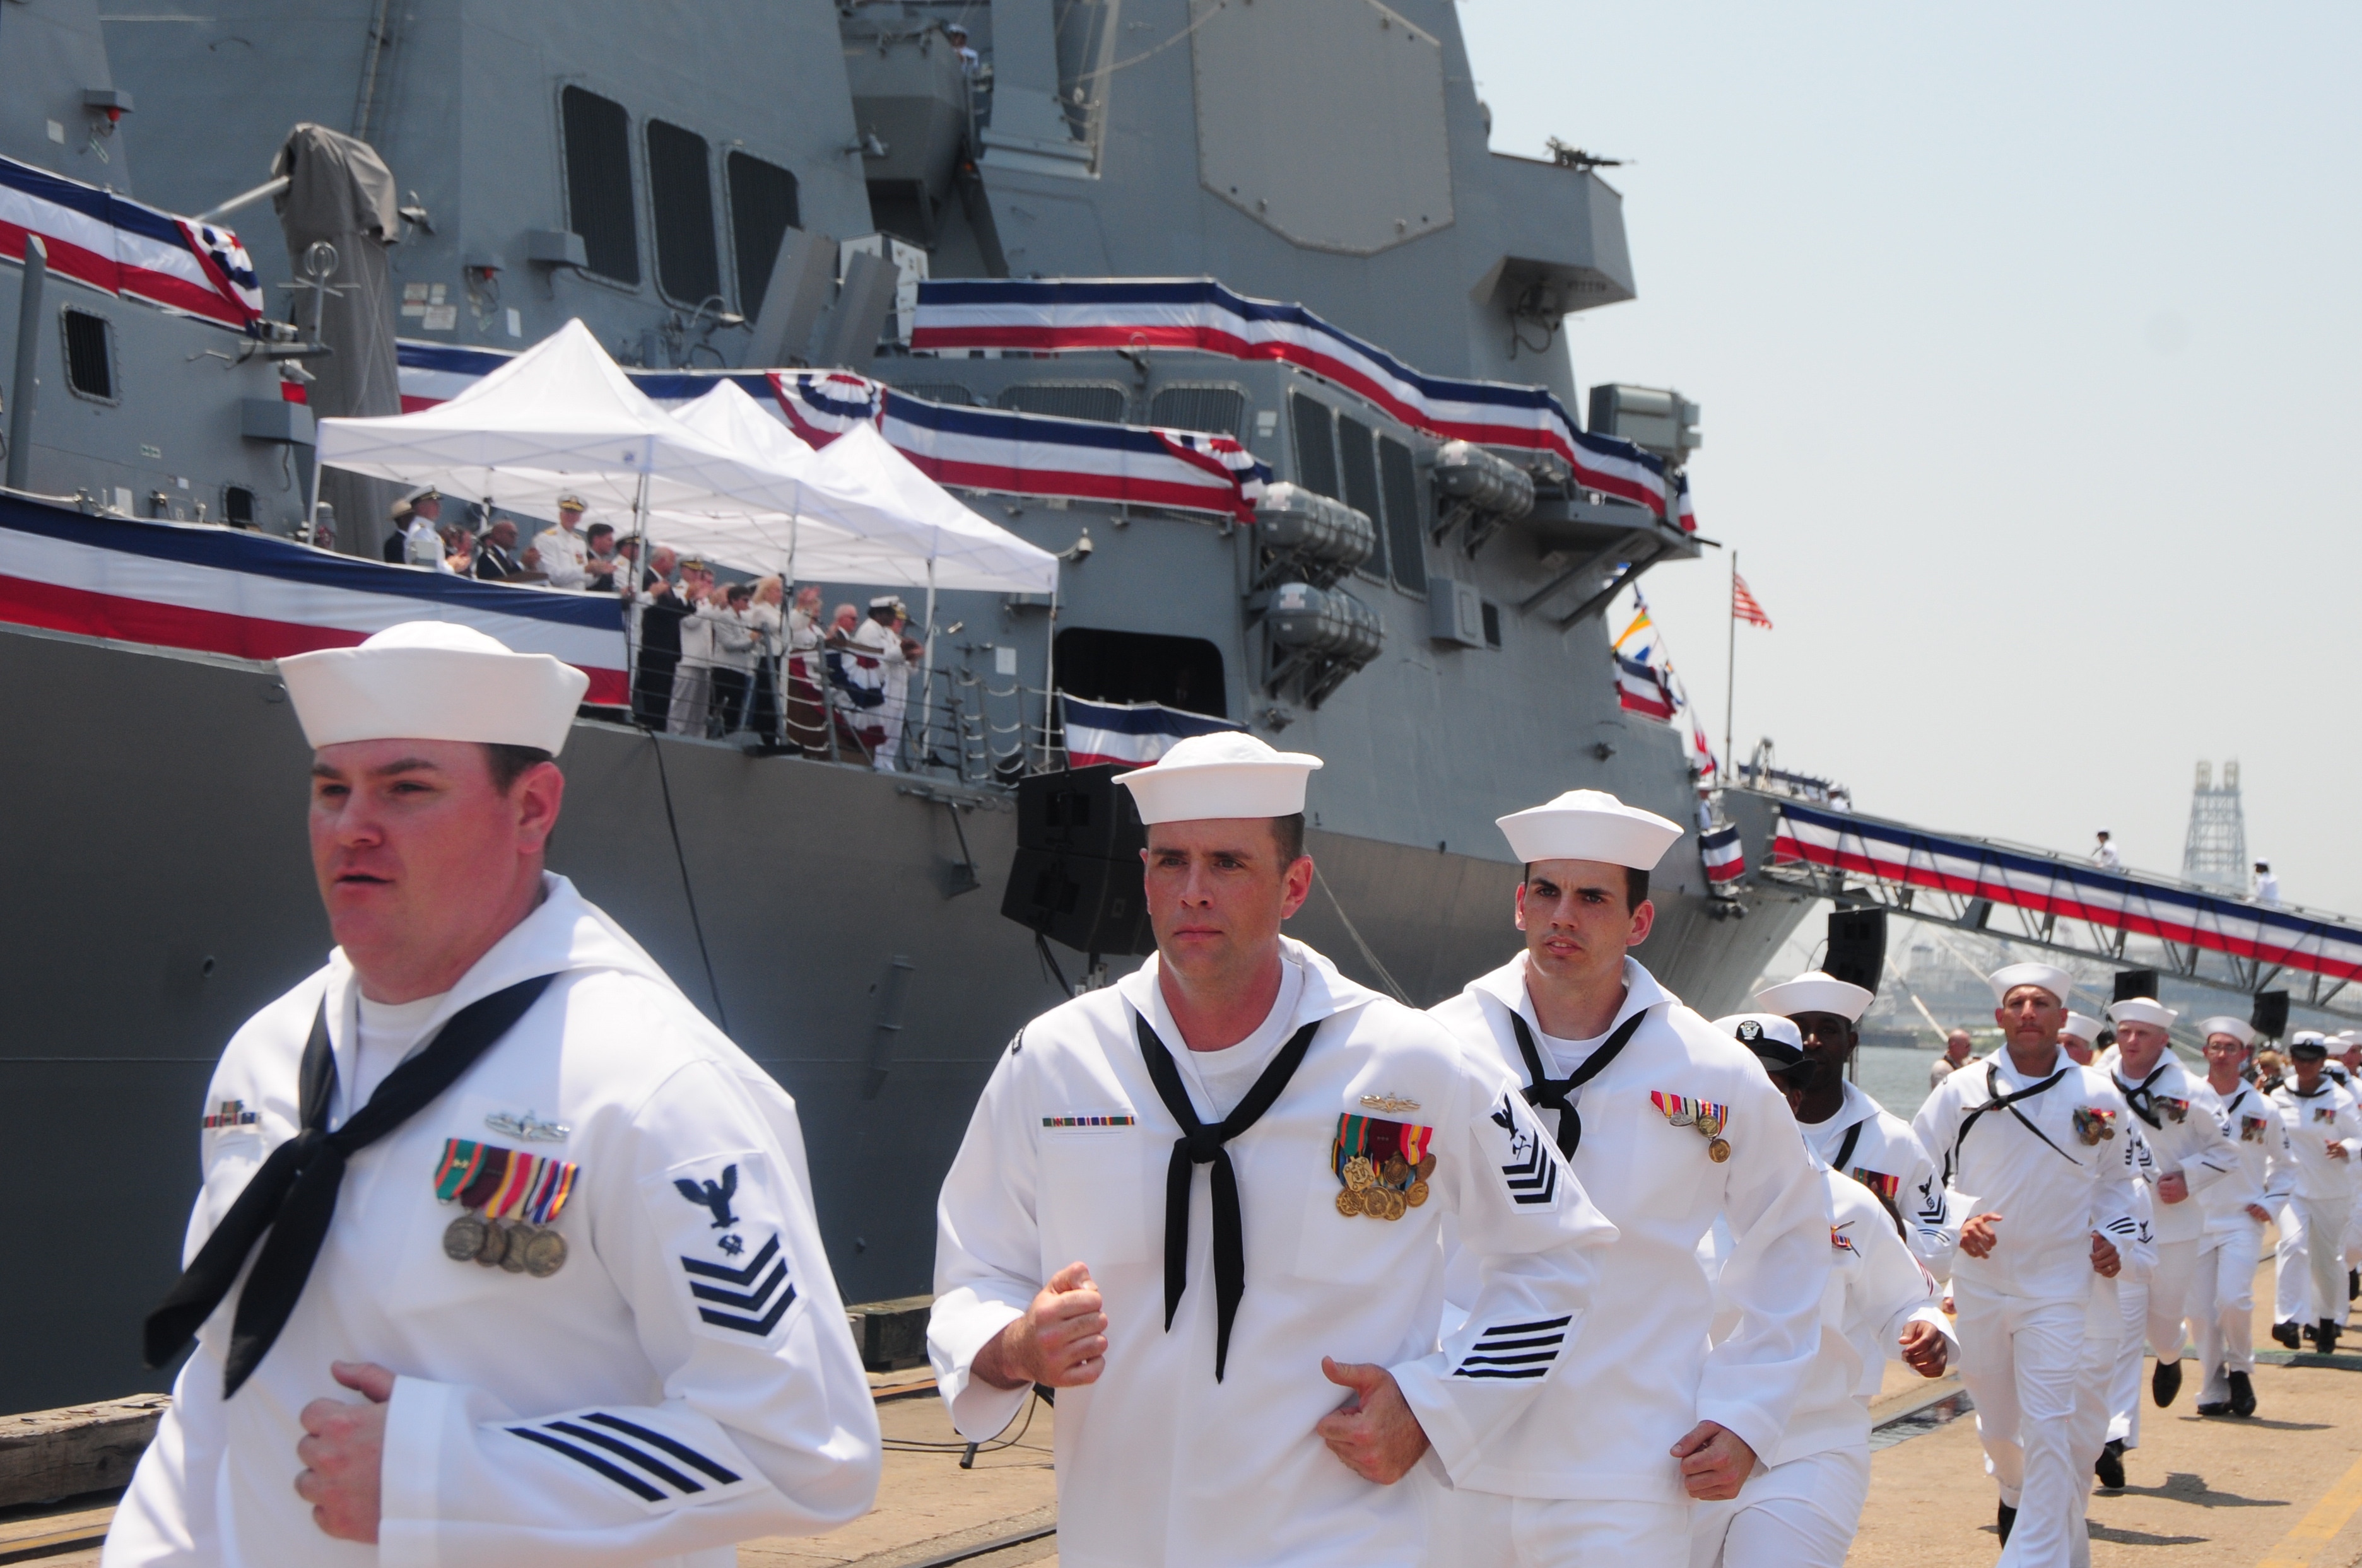 File:US Navy 110604-N-WI828-001 Sailors assigned to the Arleigh ...